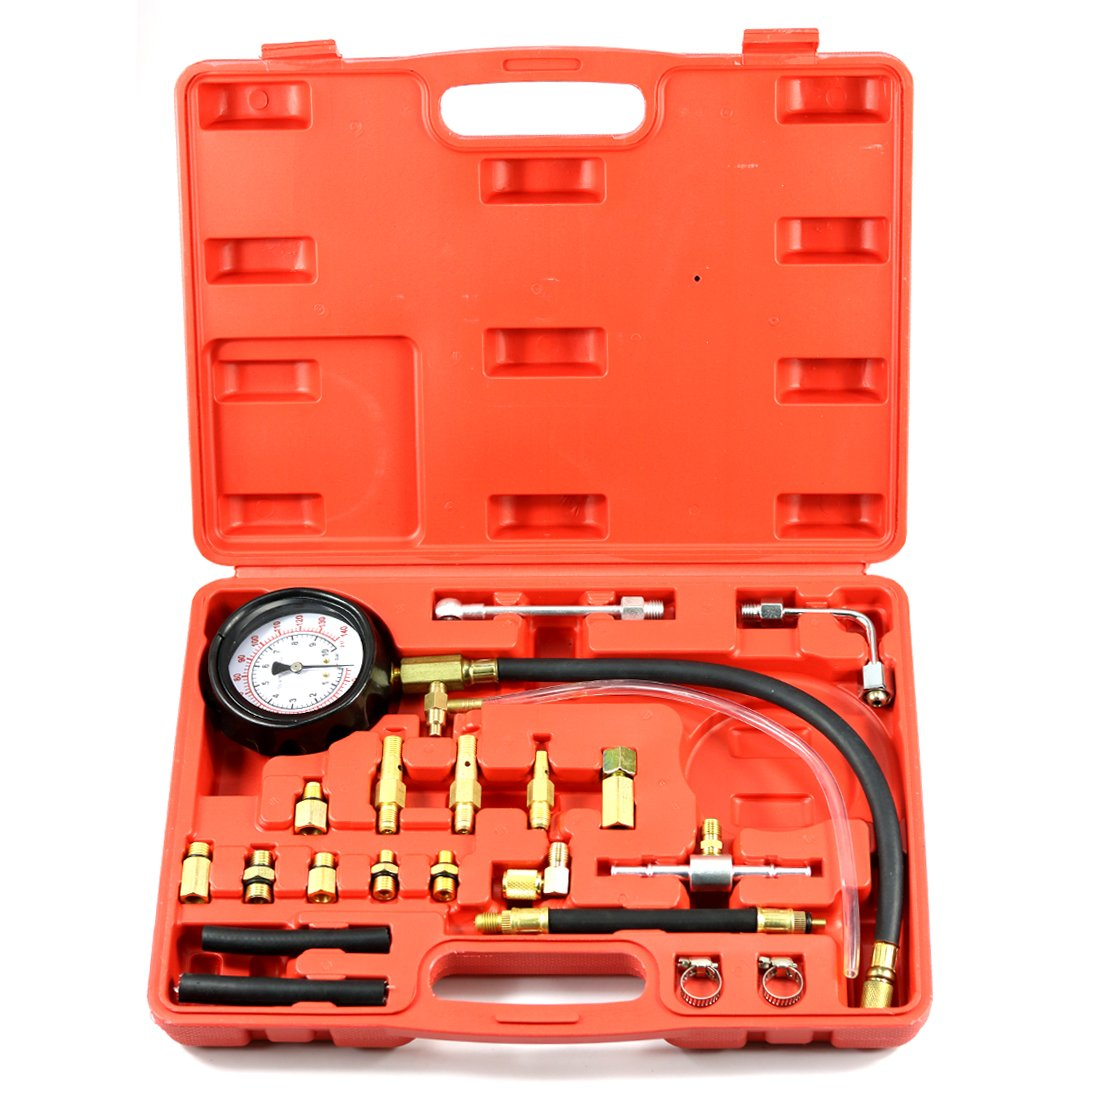 Missyee 0-140 PSI Fuel Injection Pump Injector Tester Test Pressure Gauge Gasoline Cars (Injector Tester)